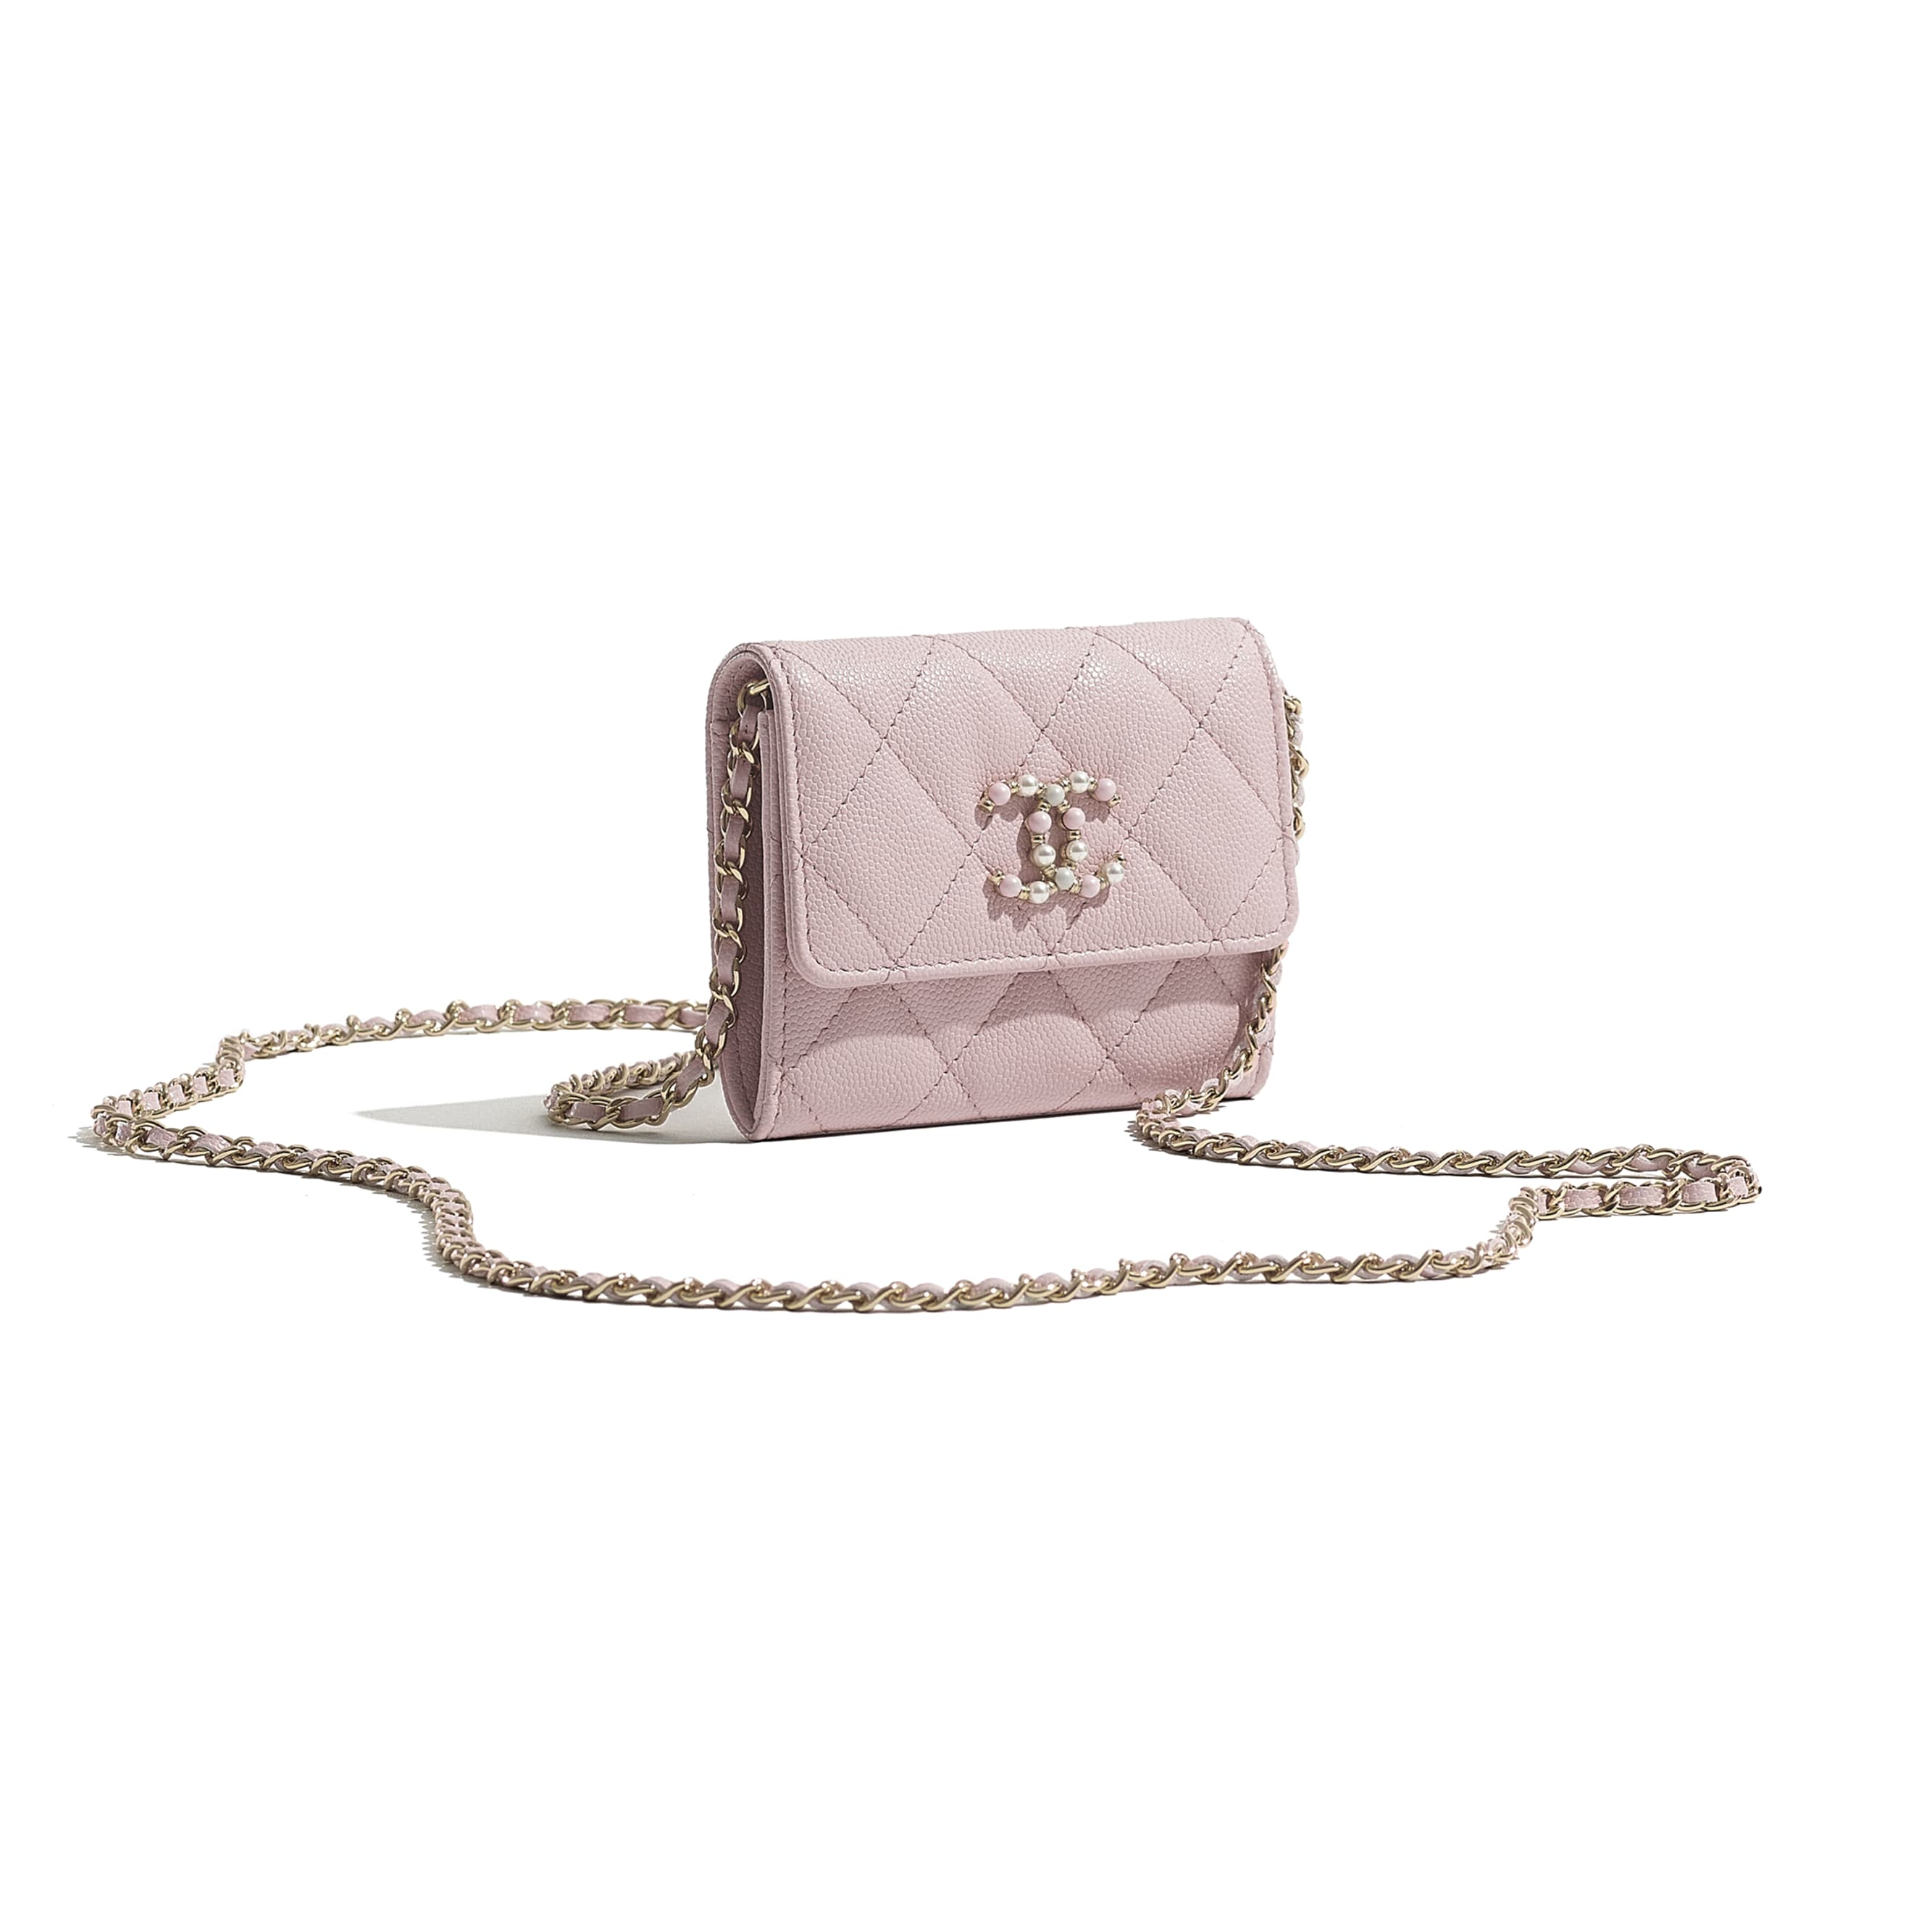 Flap Coin Purse with Chain - Light Pink - Grained Calfskin & Gold-Tone Metal - CHANEL - Extra view - see standard sized version